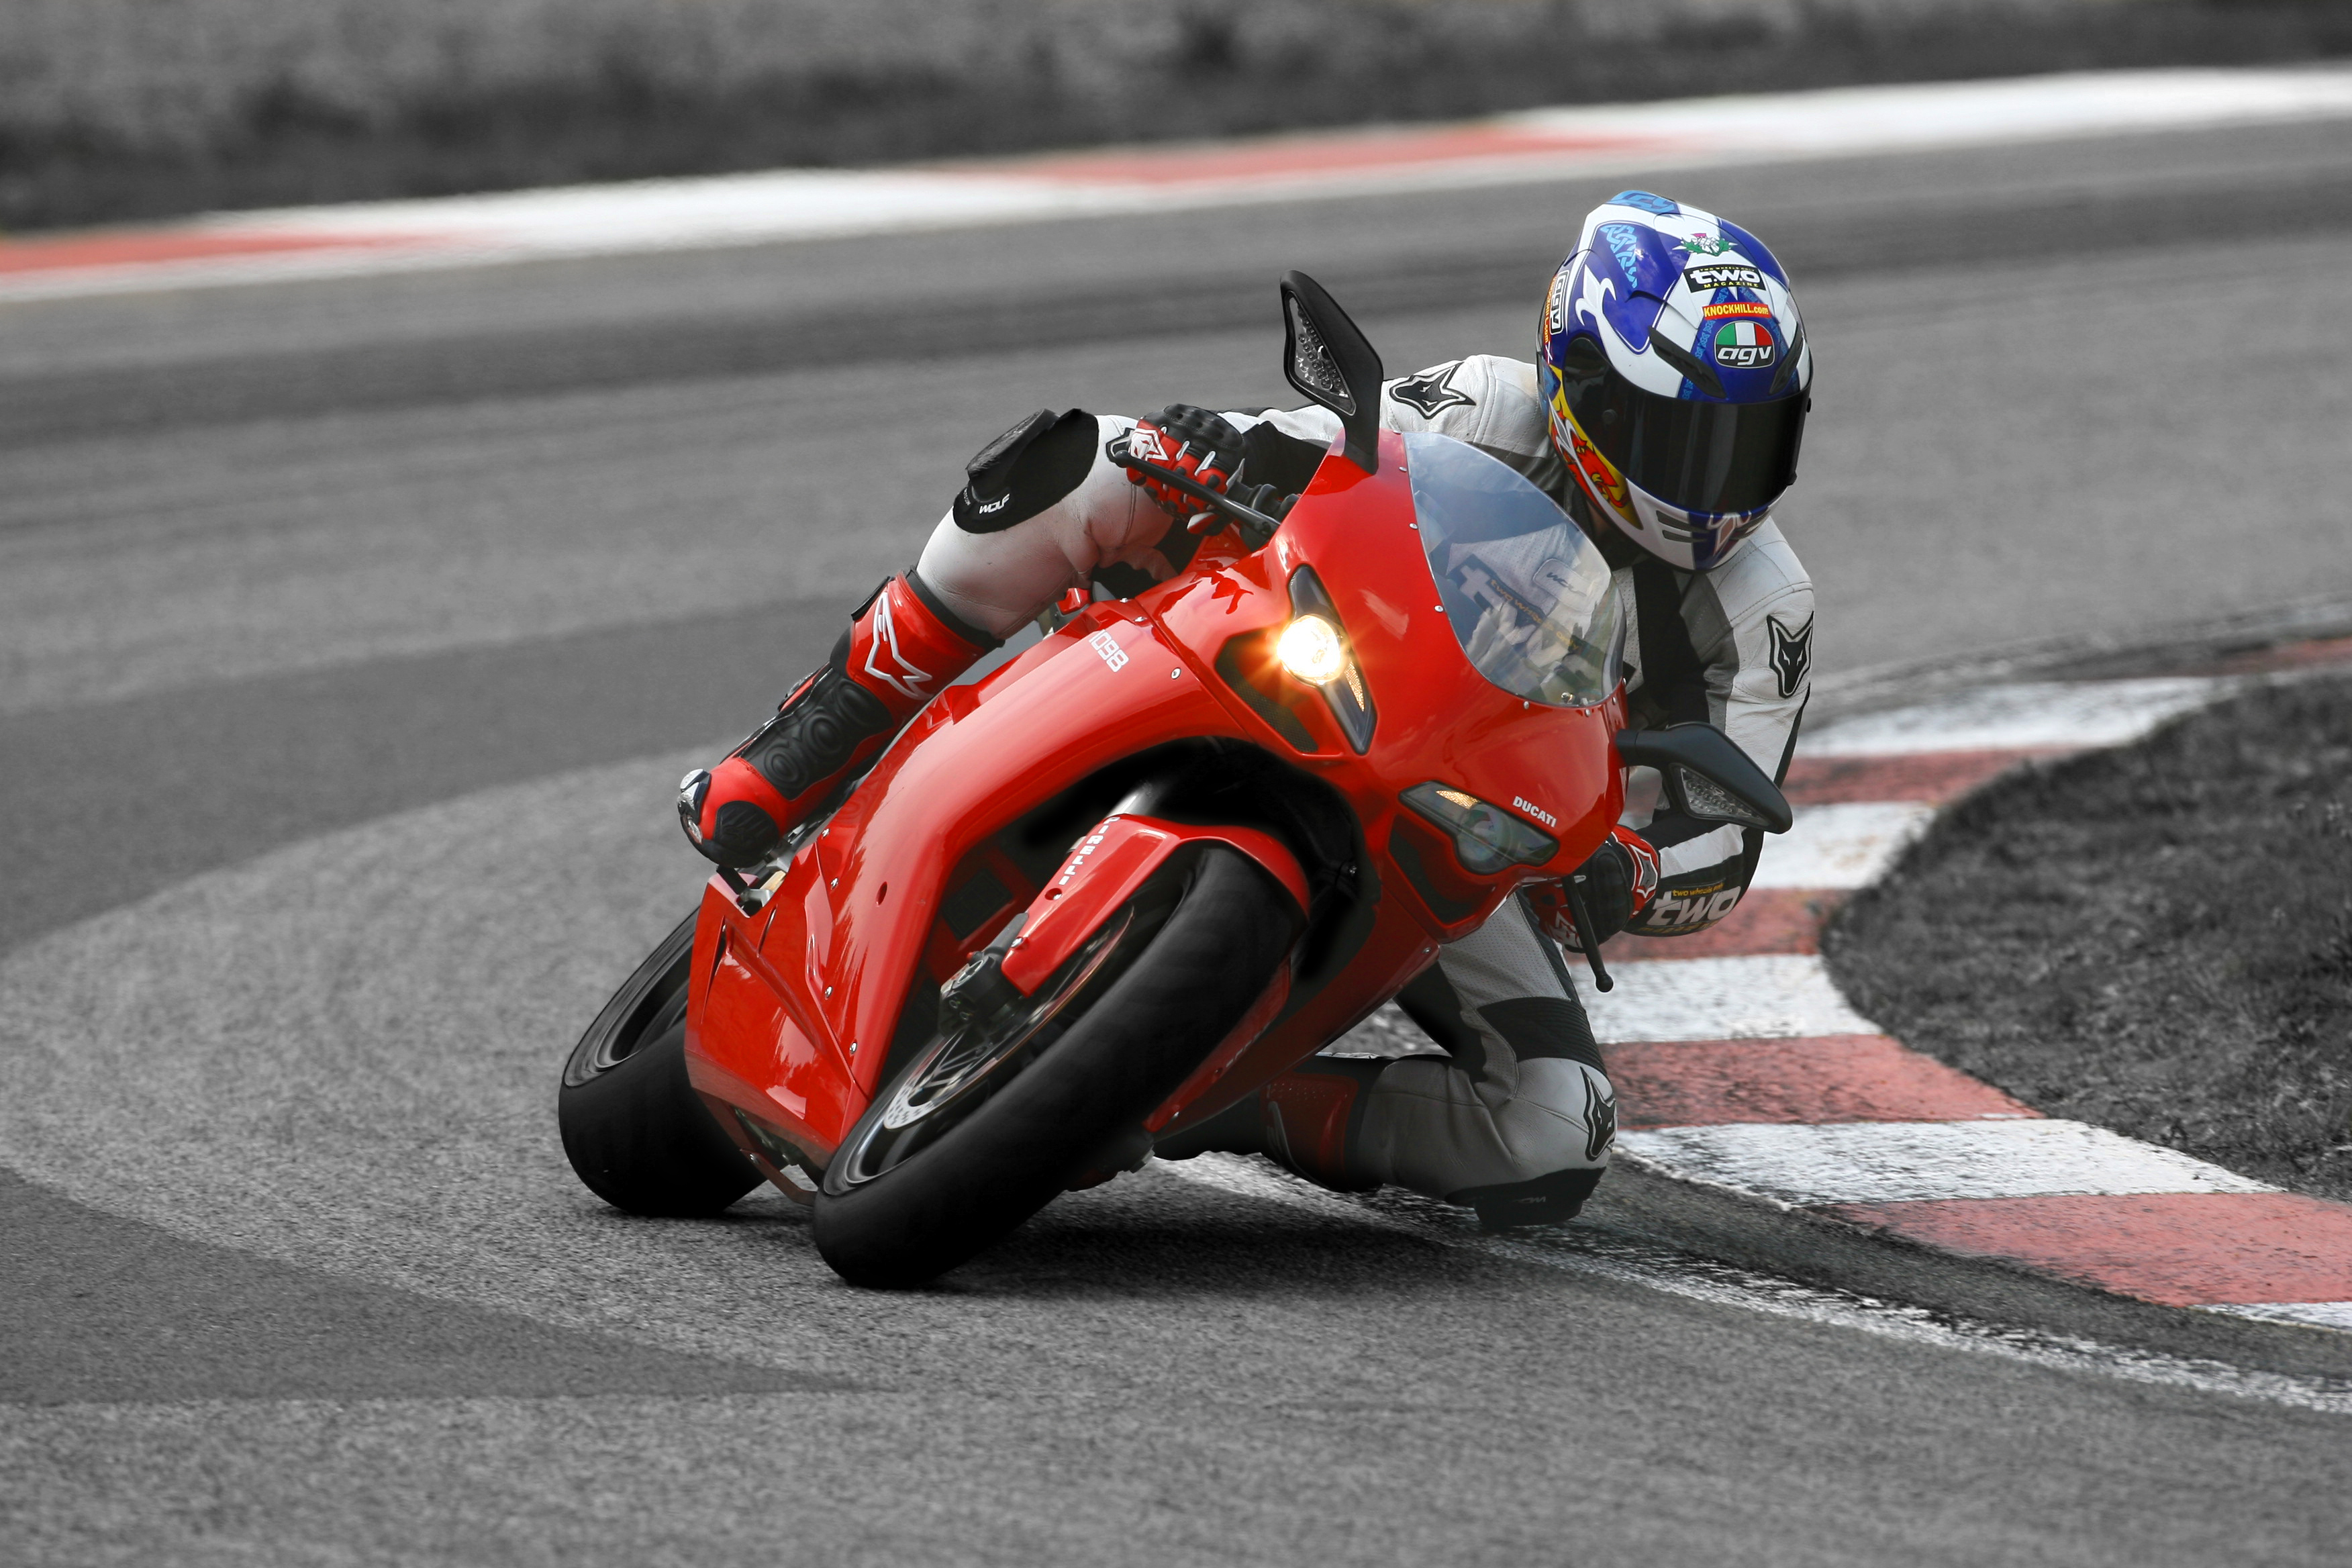 First Ride: Ducati 1098 review